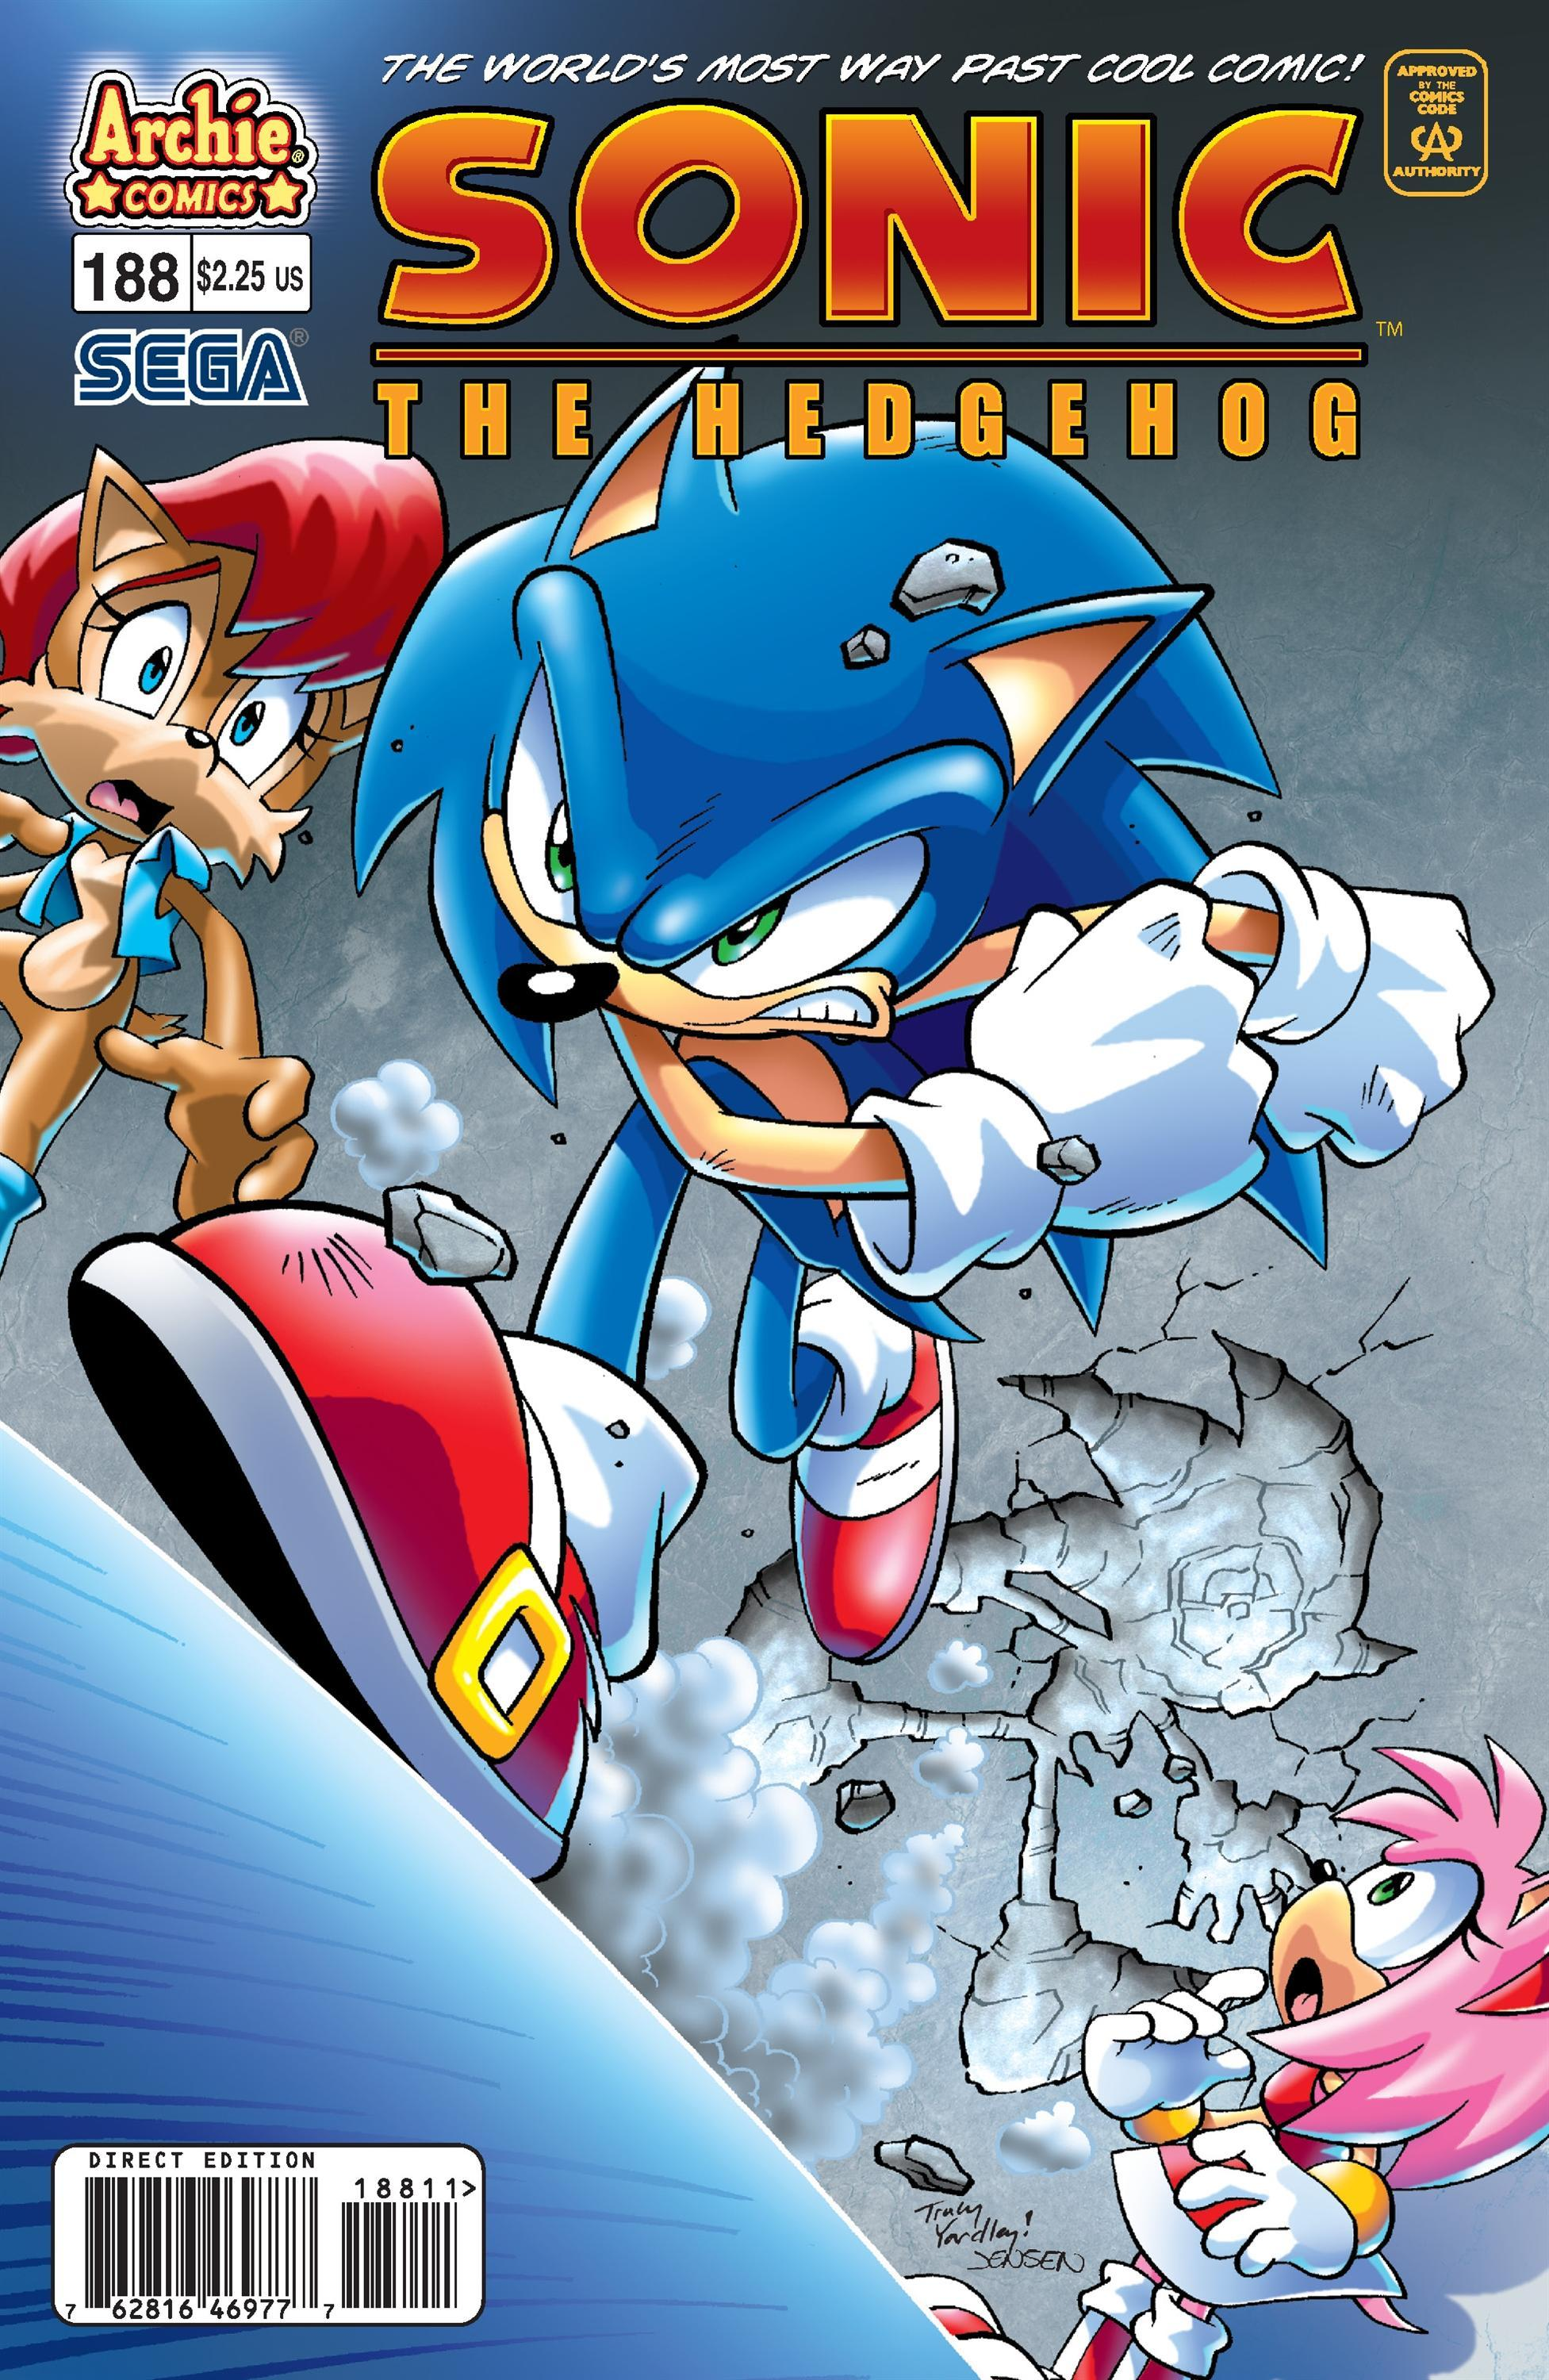 Archie sonic the hedgehog issue 188 sonic news network wikia